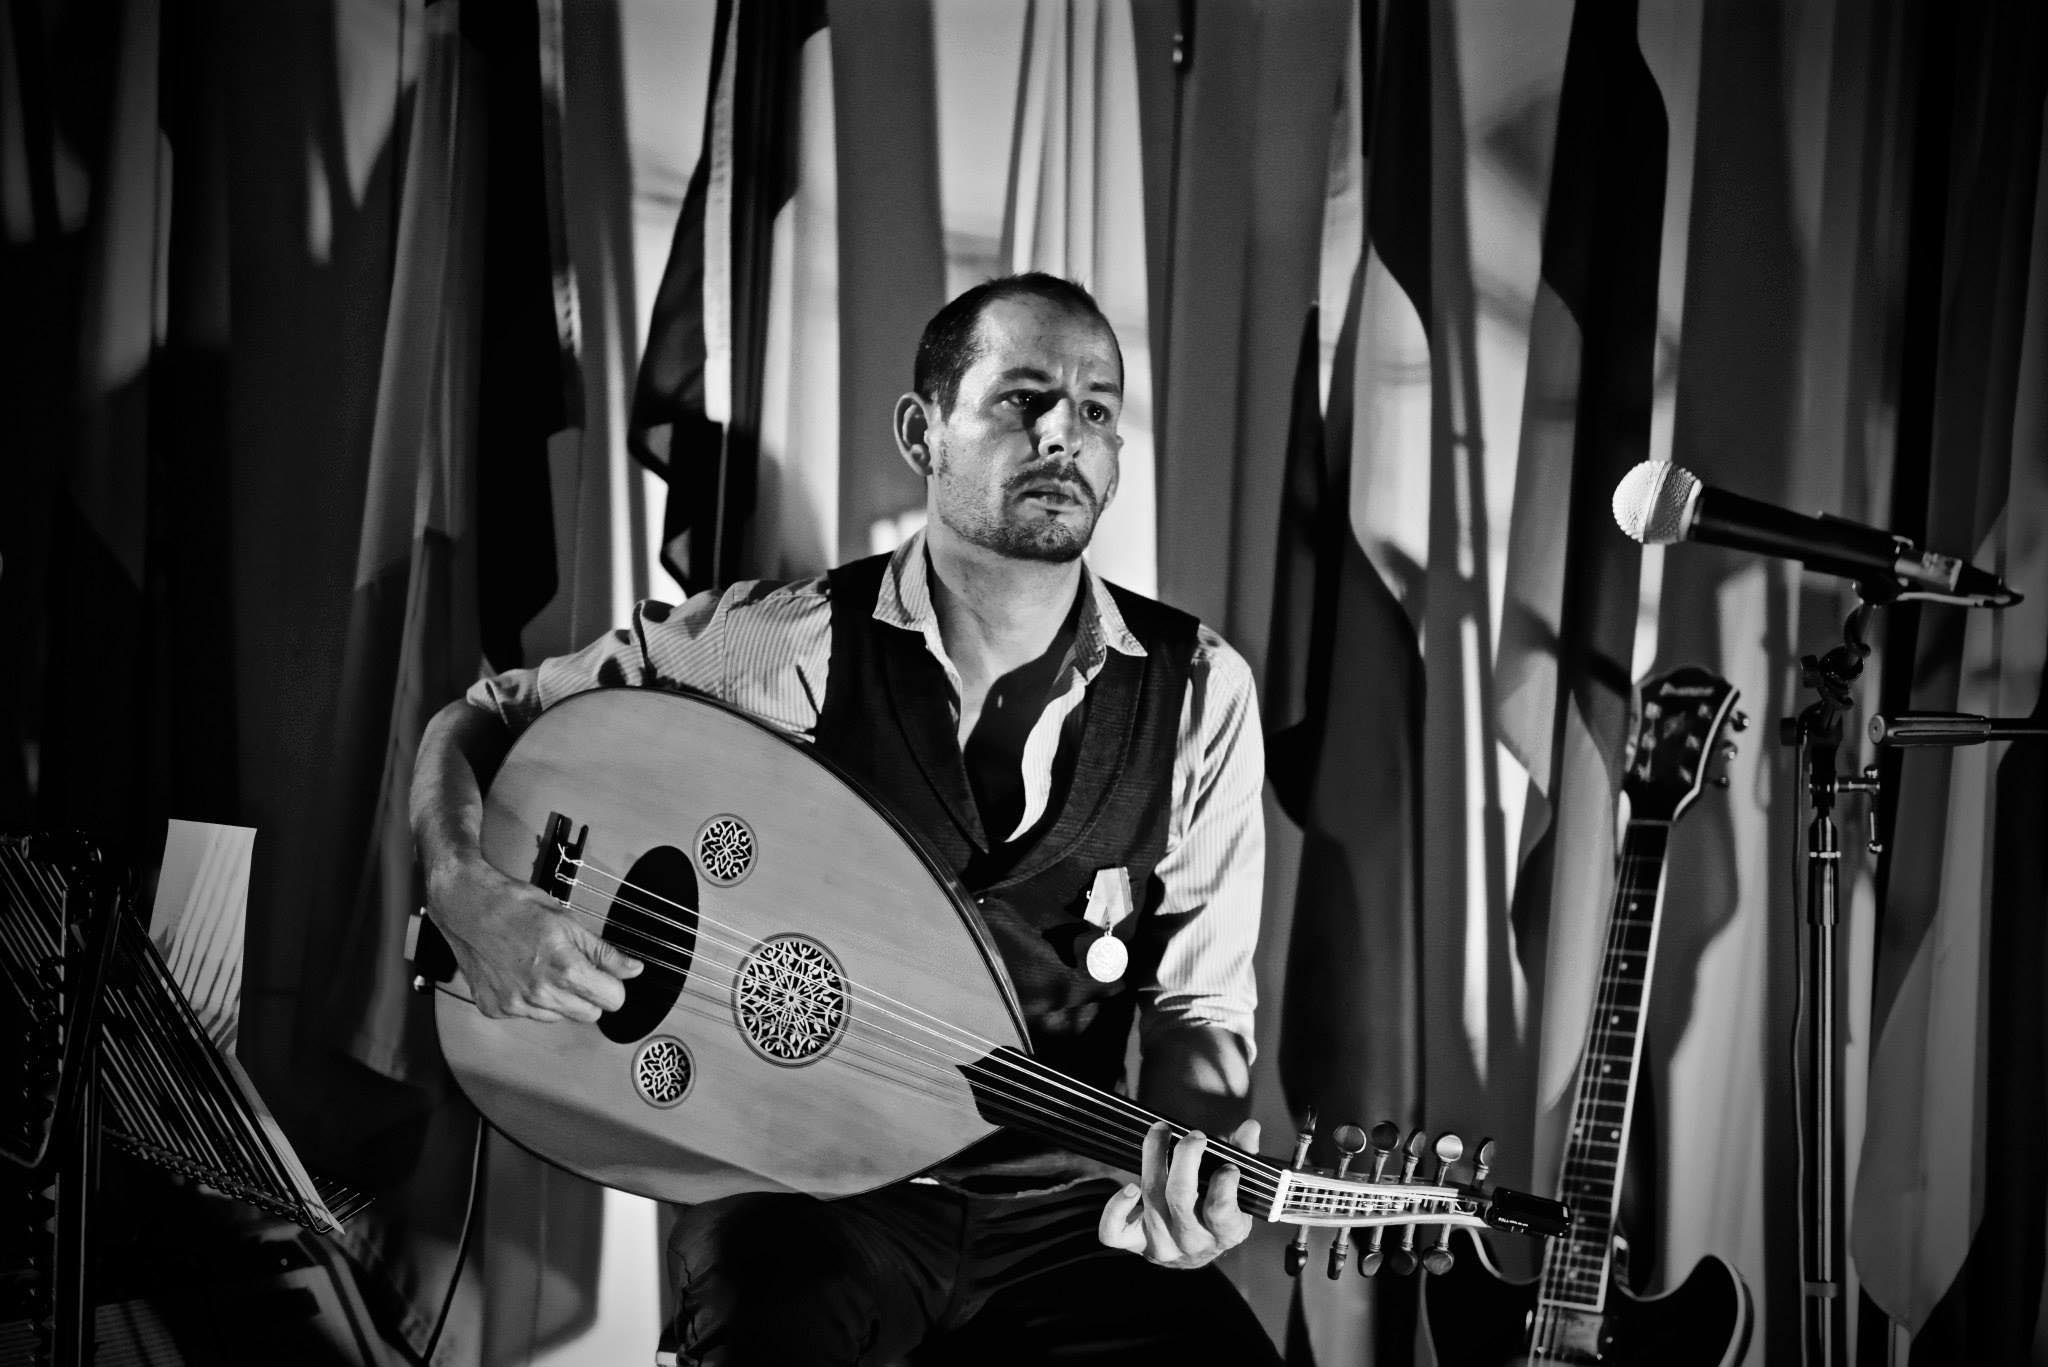 A conversation with local musician and archivist Andrew Alamango